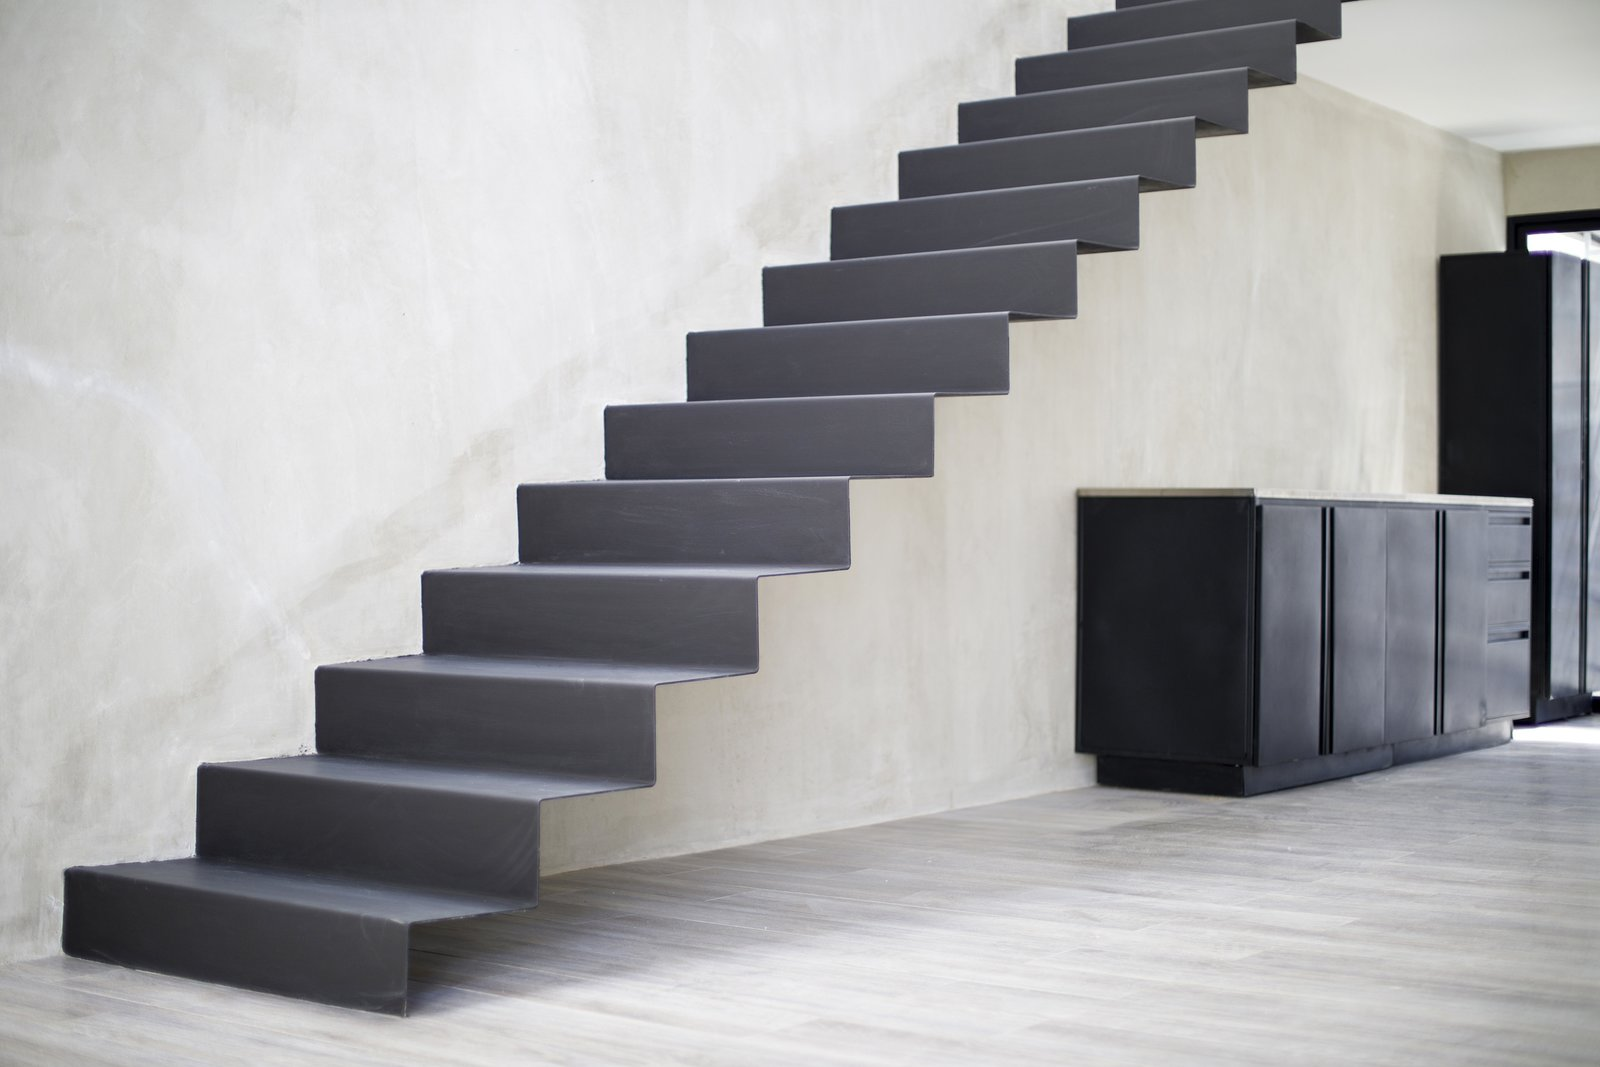 Staircase and Metal Tread  Casa Ching by MG design studio